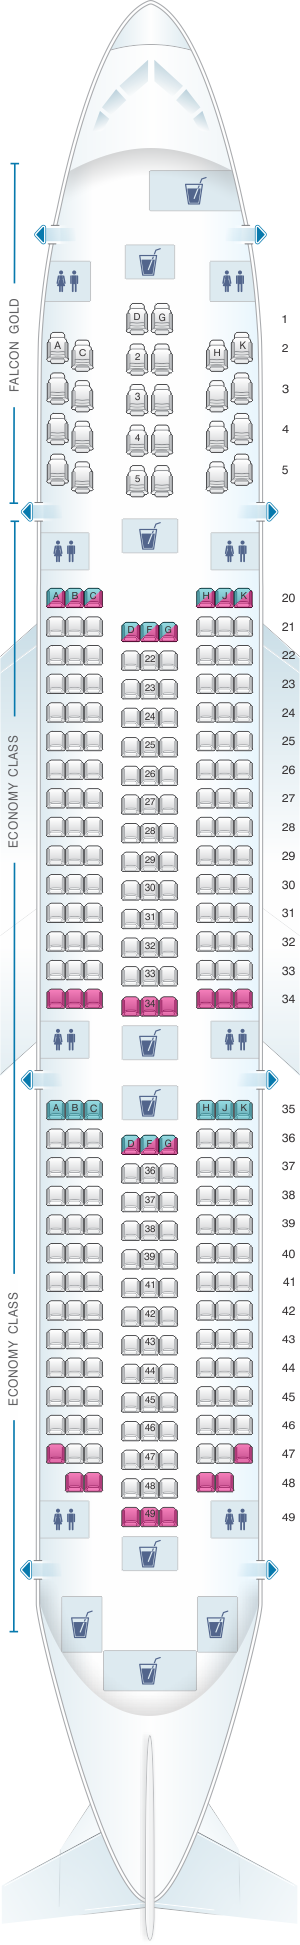 Seat map for Gulf Air Boeing B787 9